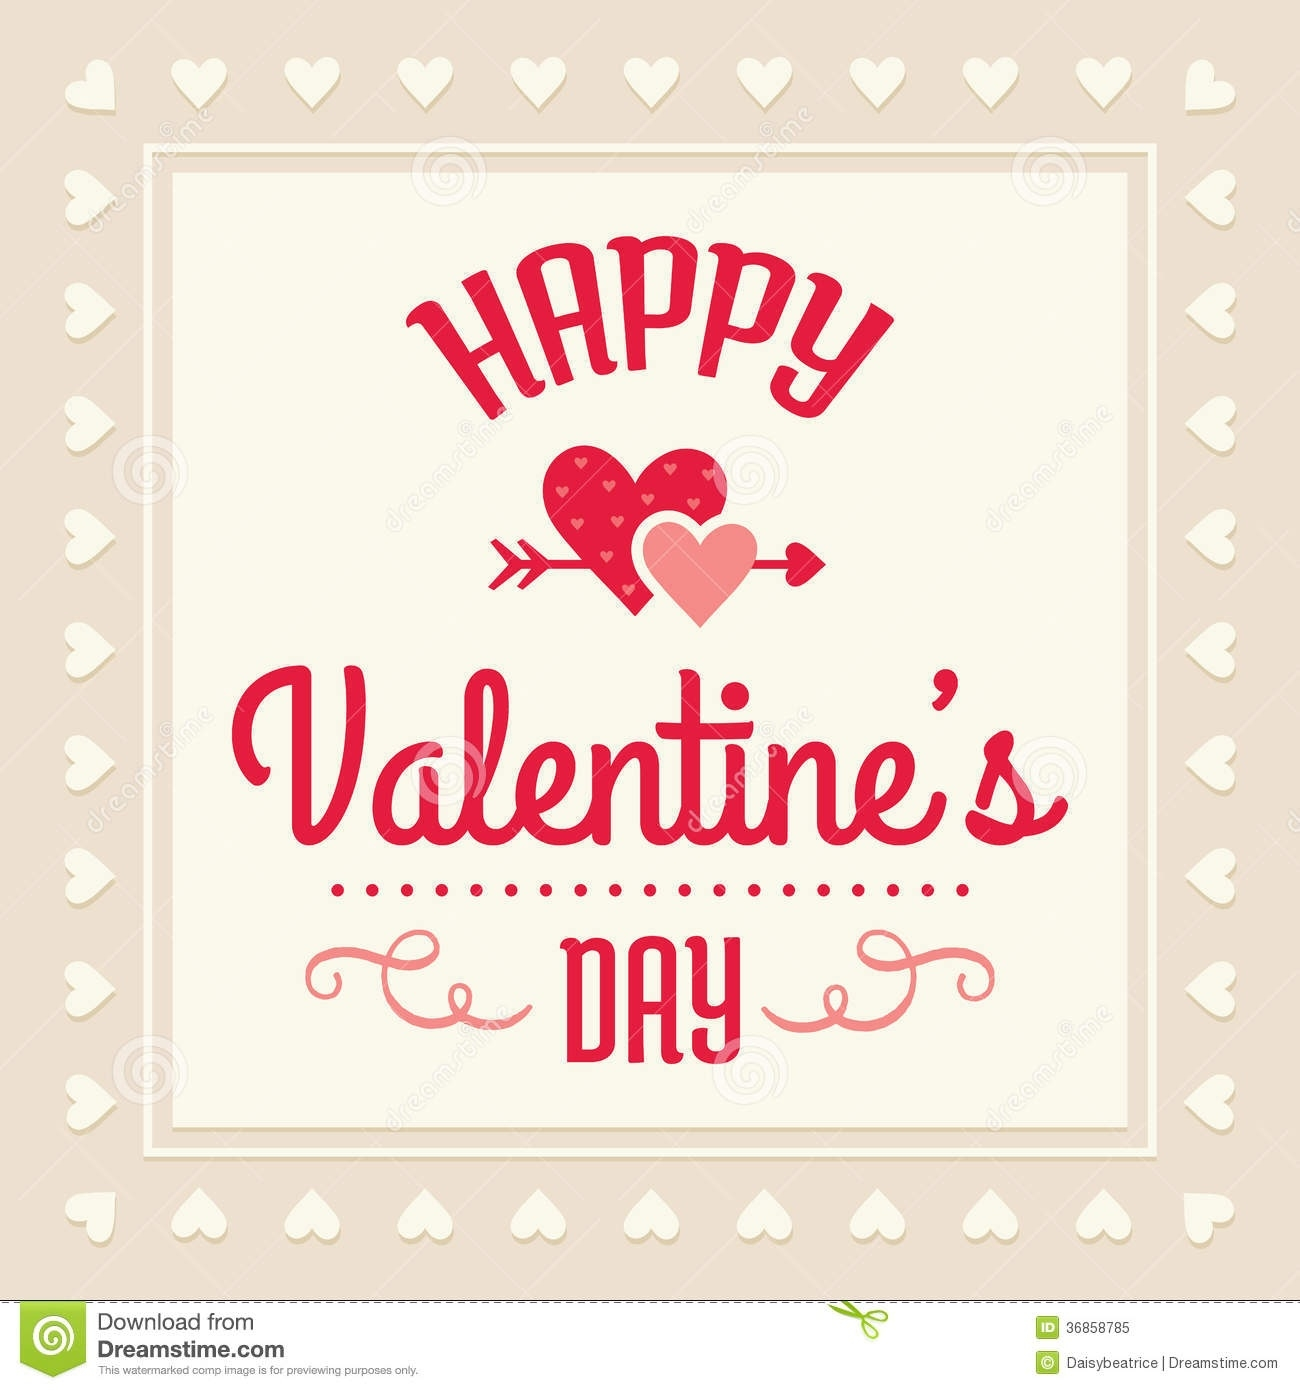 Vintage Happy Valentines Day Clipart.